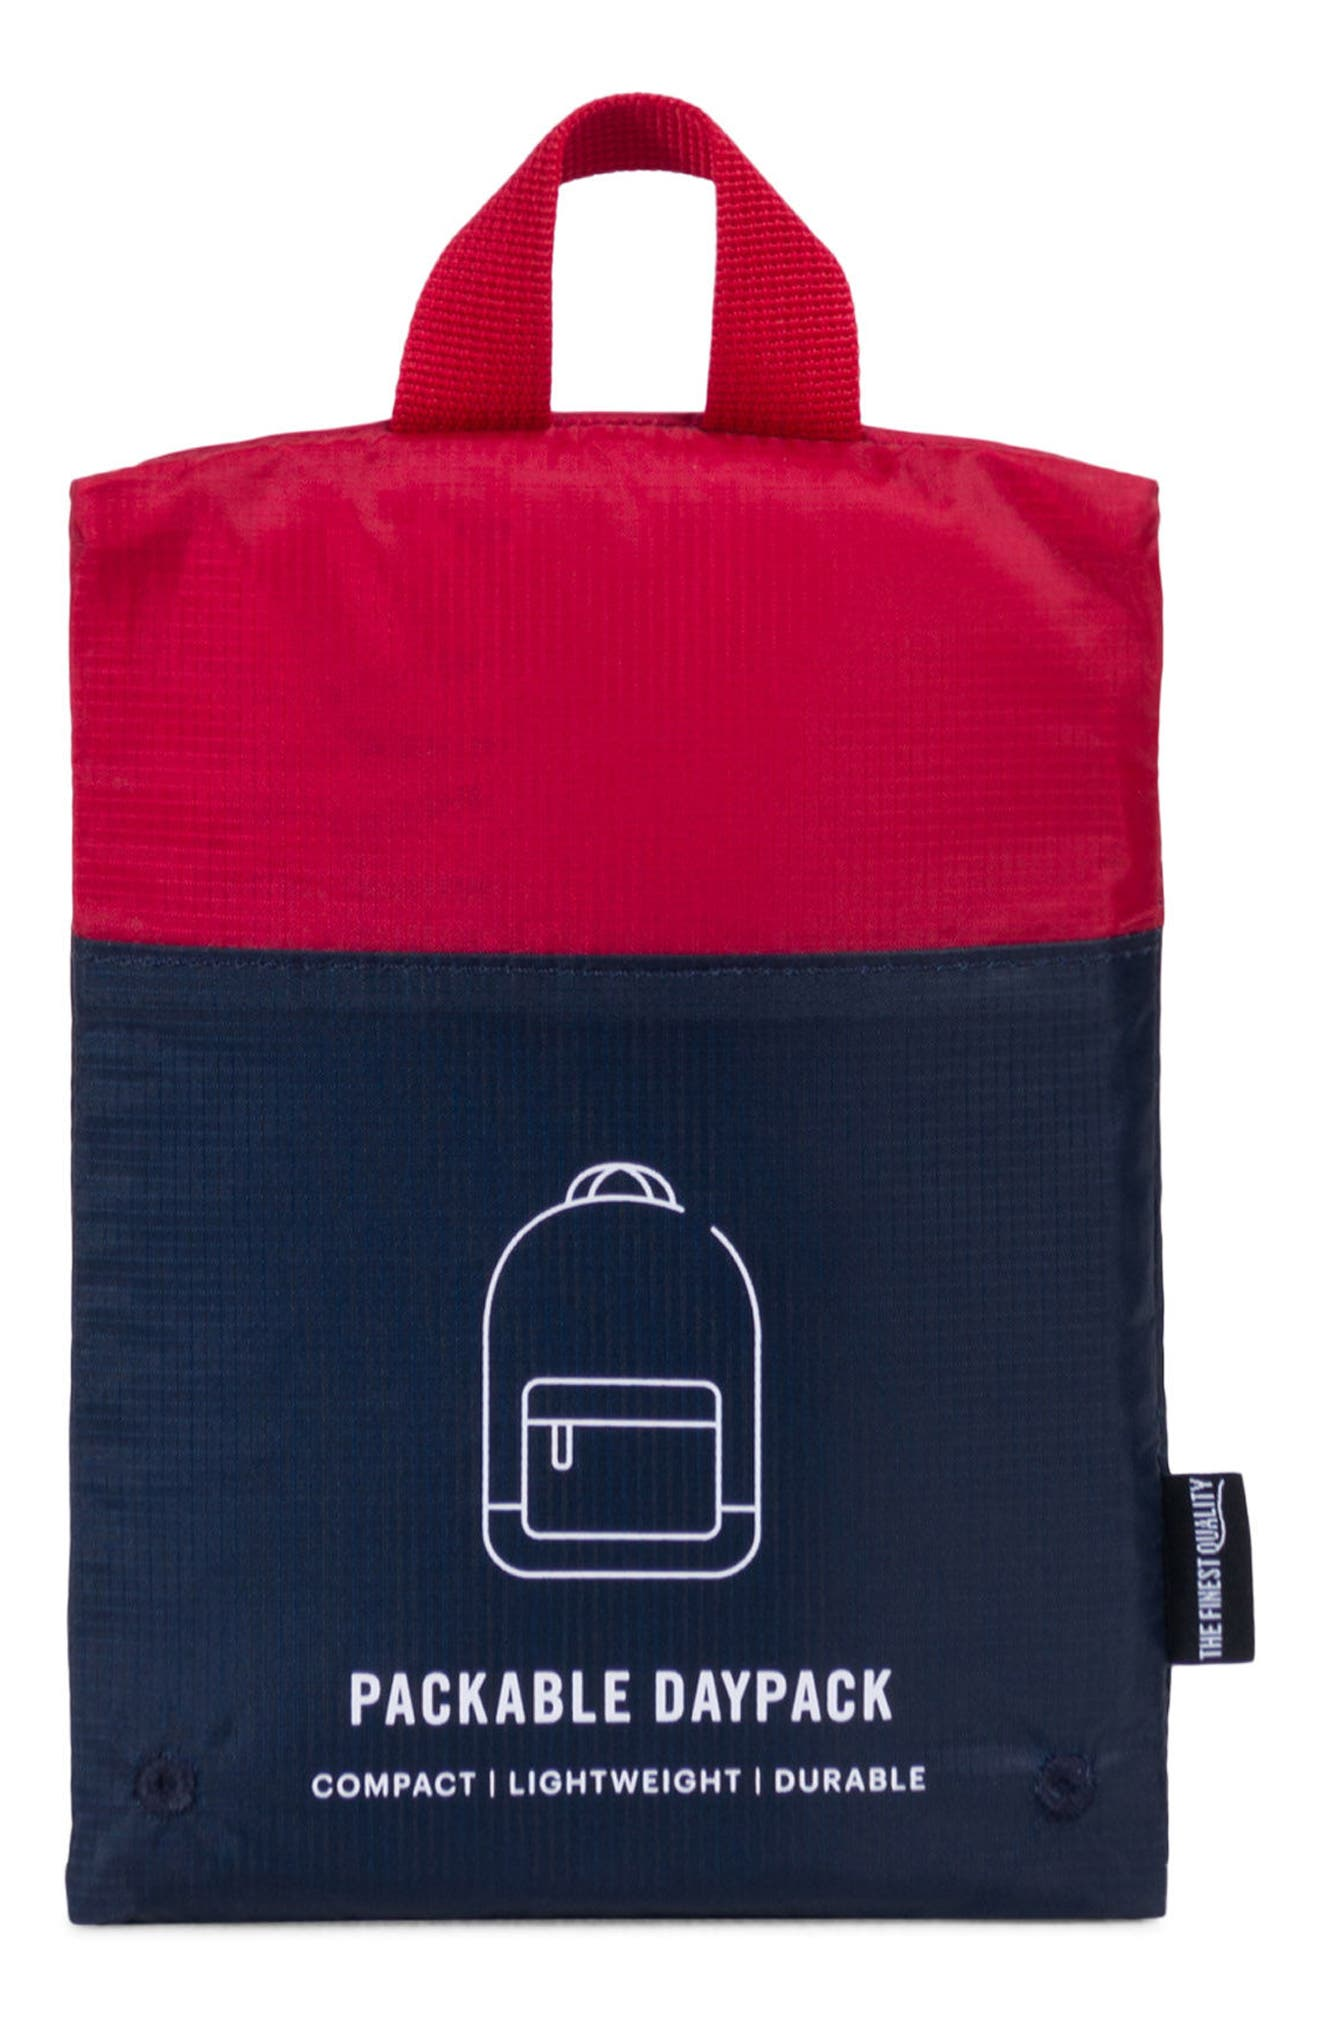 Packable Daypack,                             Alternate thumbnail 4, color,                             Navy/ Red